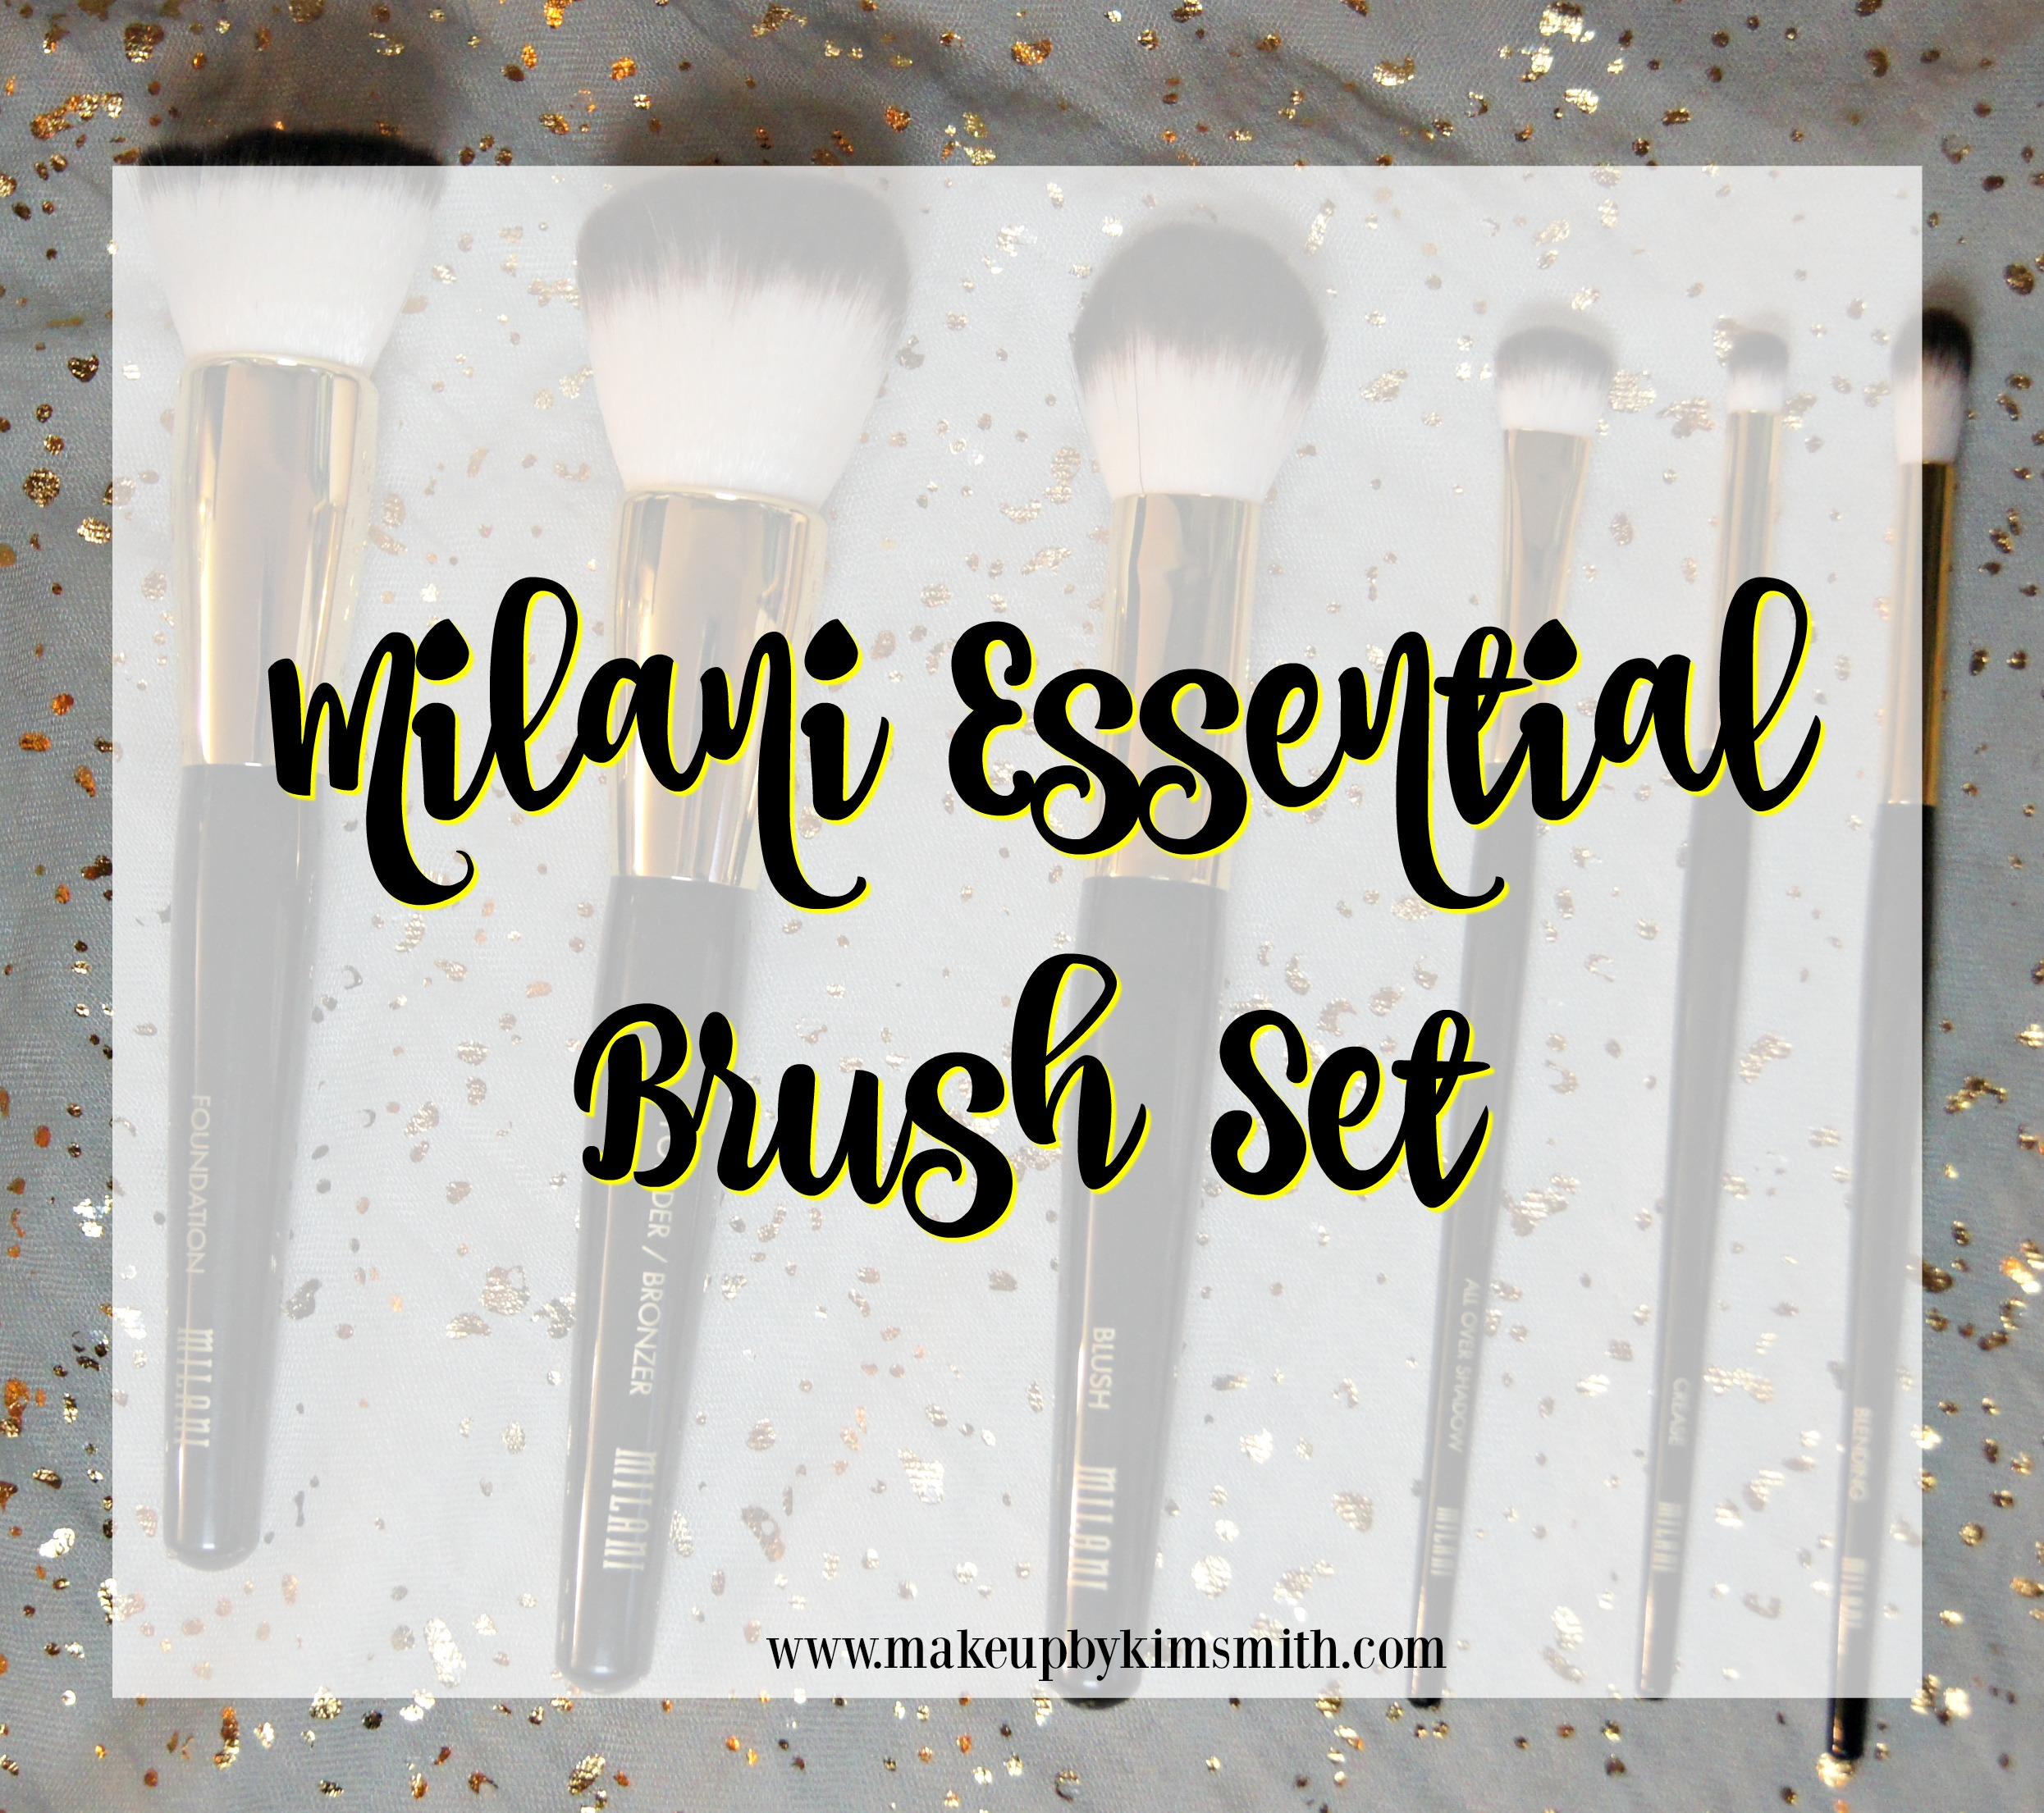 The New Milani Essential Brush Set